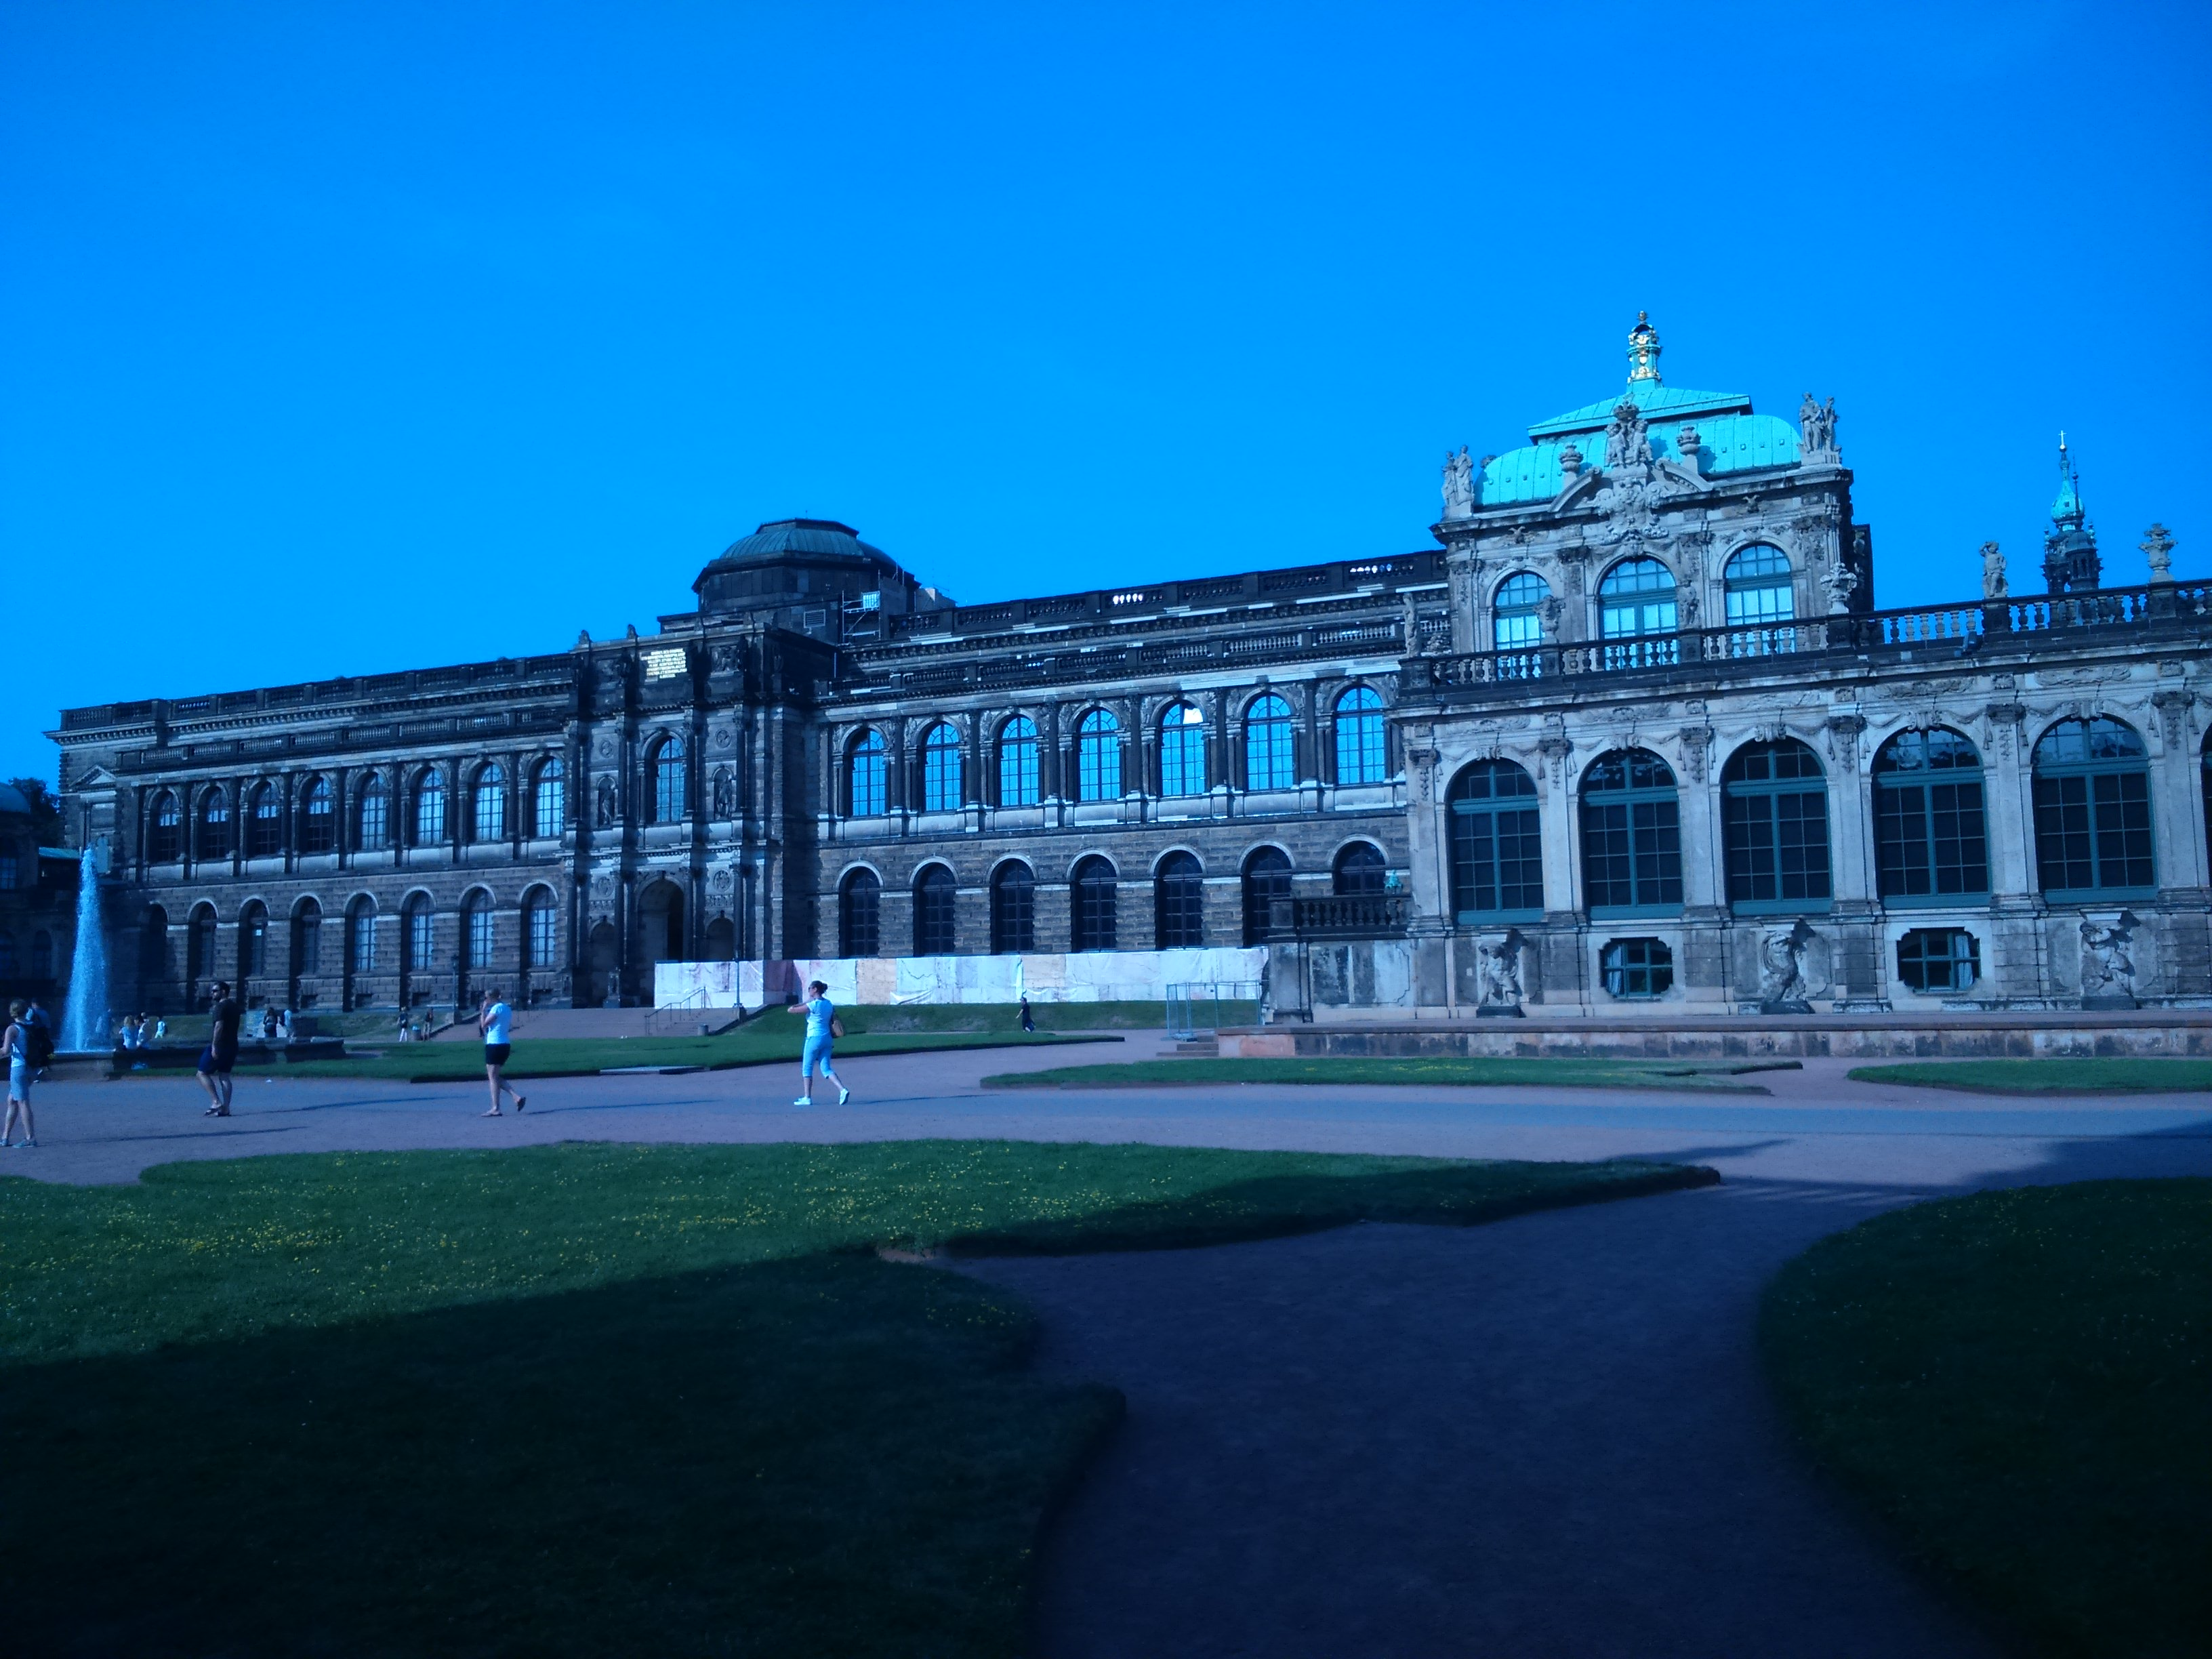 Completely blue photo of the Dresden Zwinger